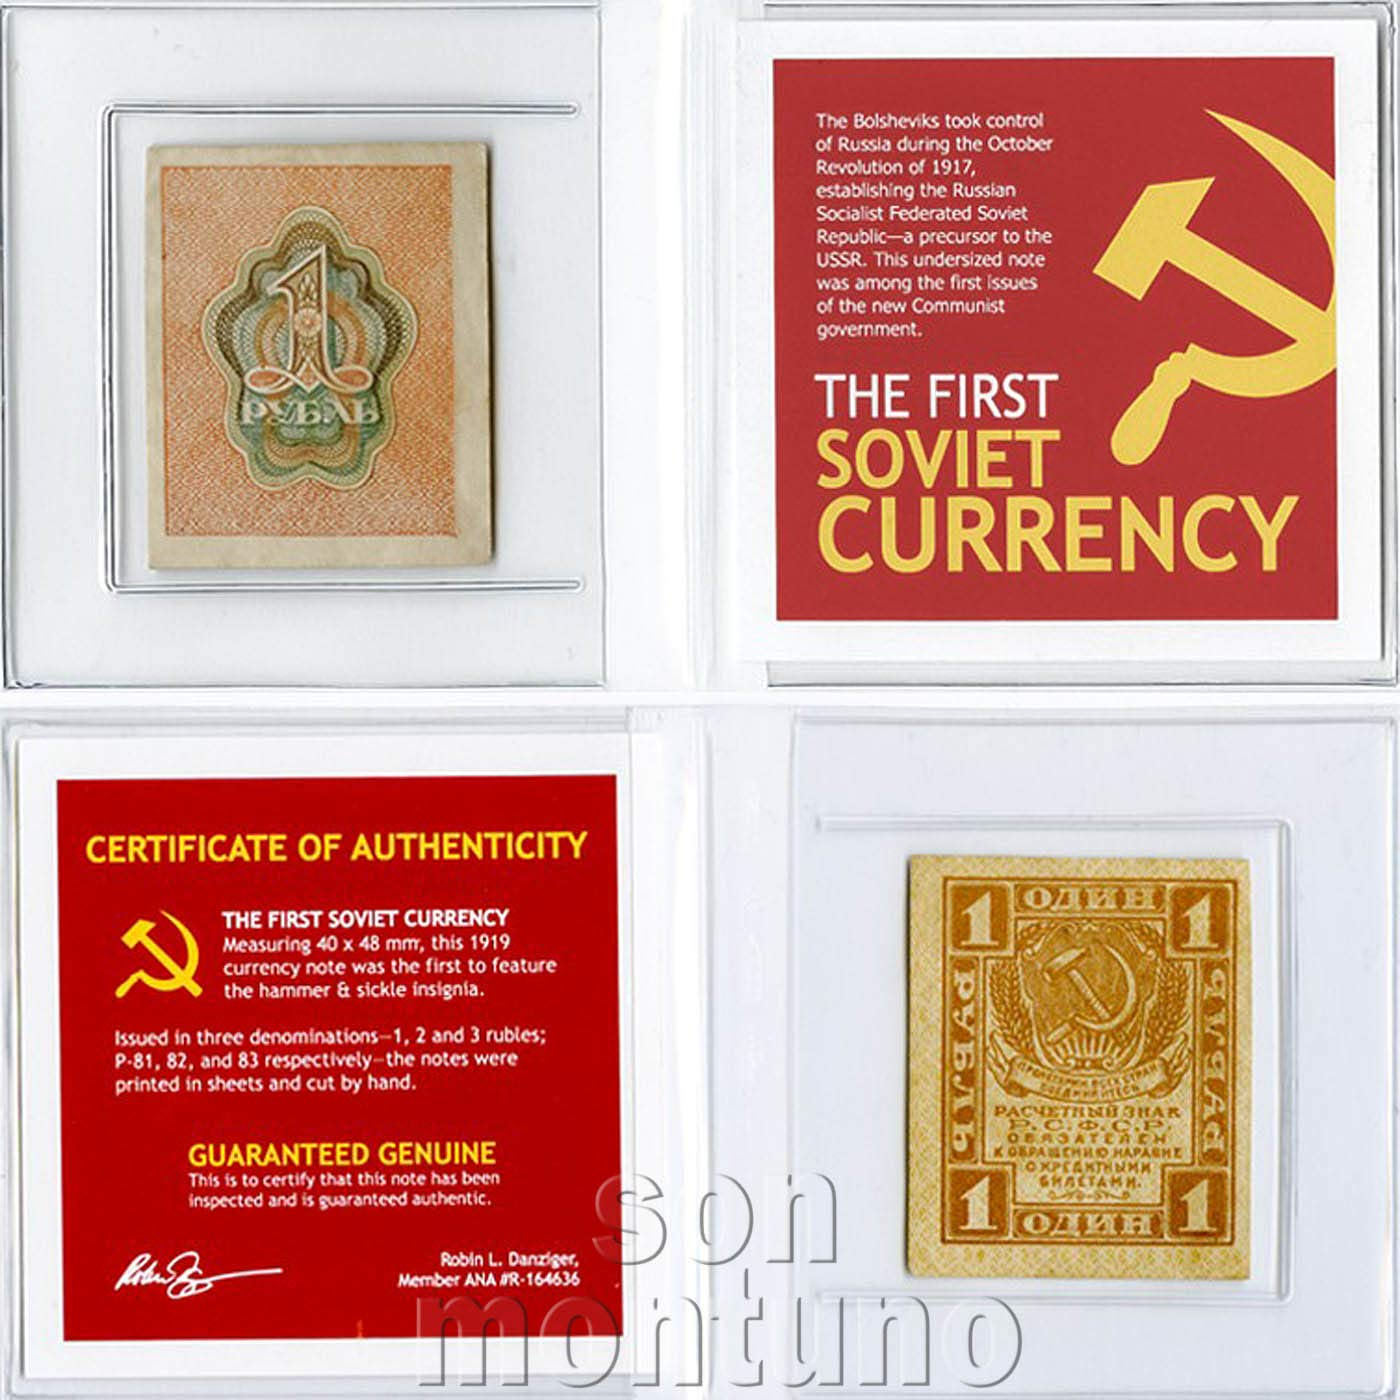 THE FIRST SOVIET CURRENCY COA 1919 Russia 1 Ruble P-81 Banknote in Folder